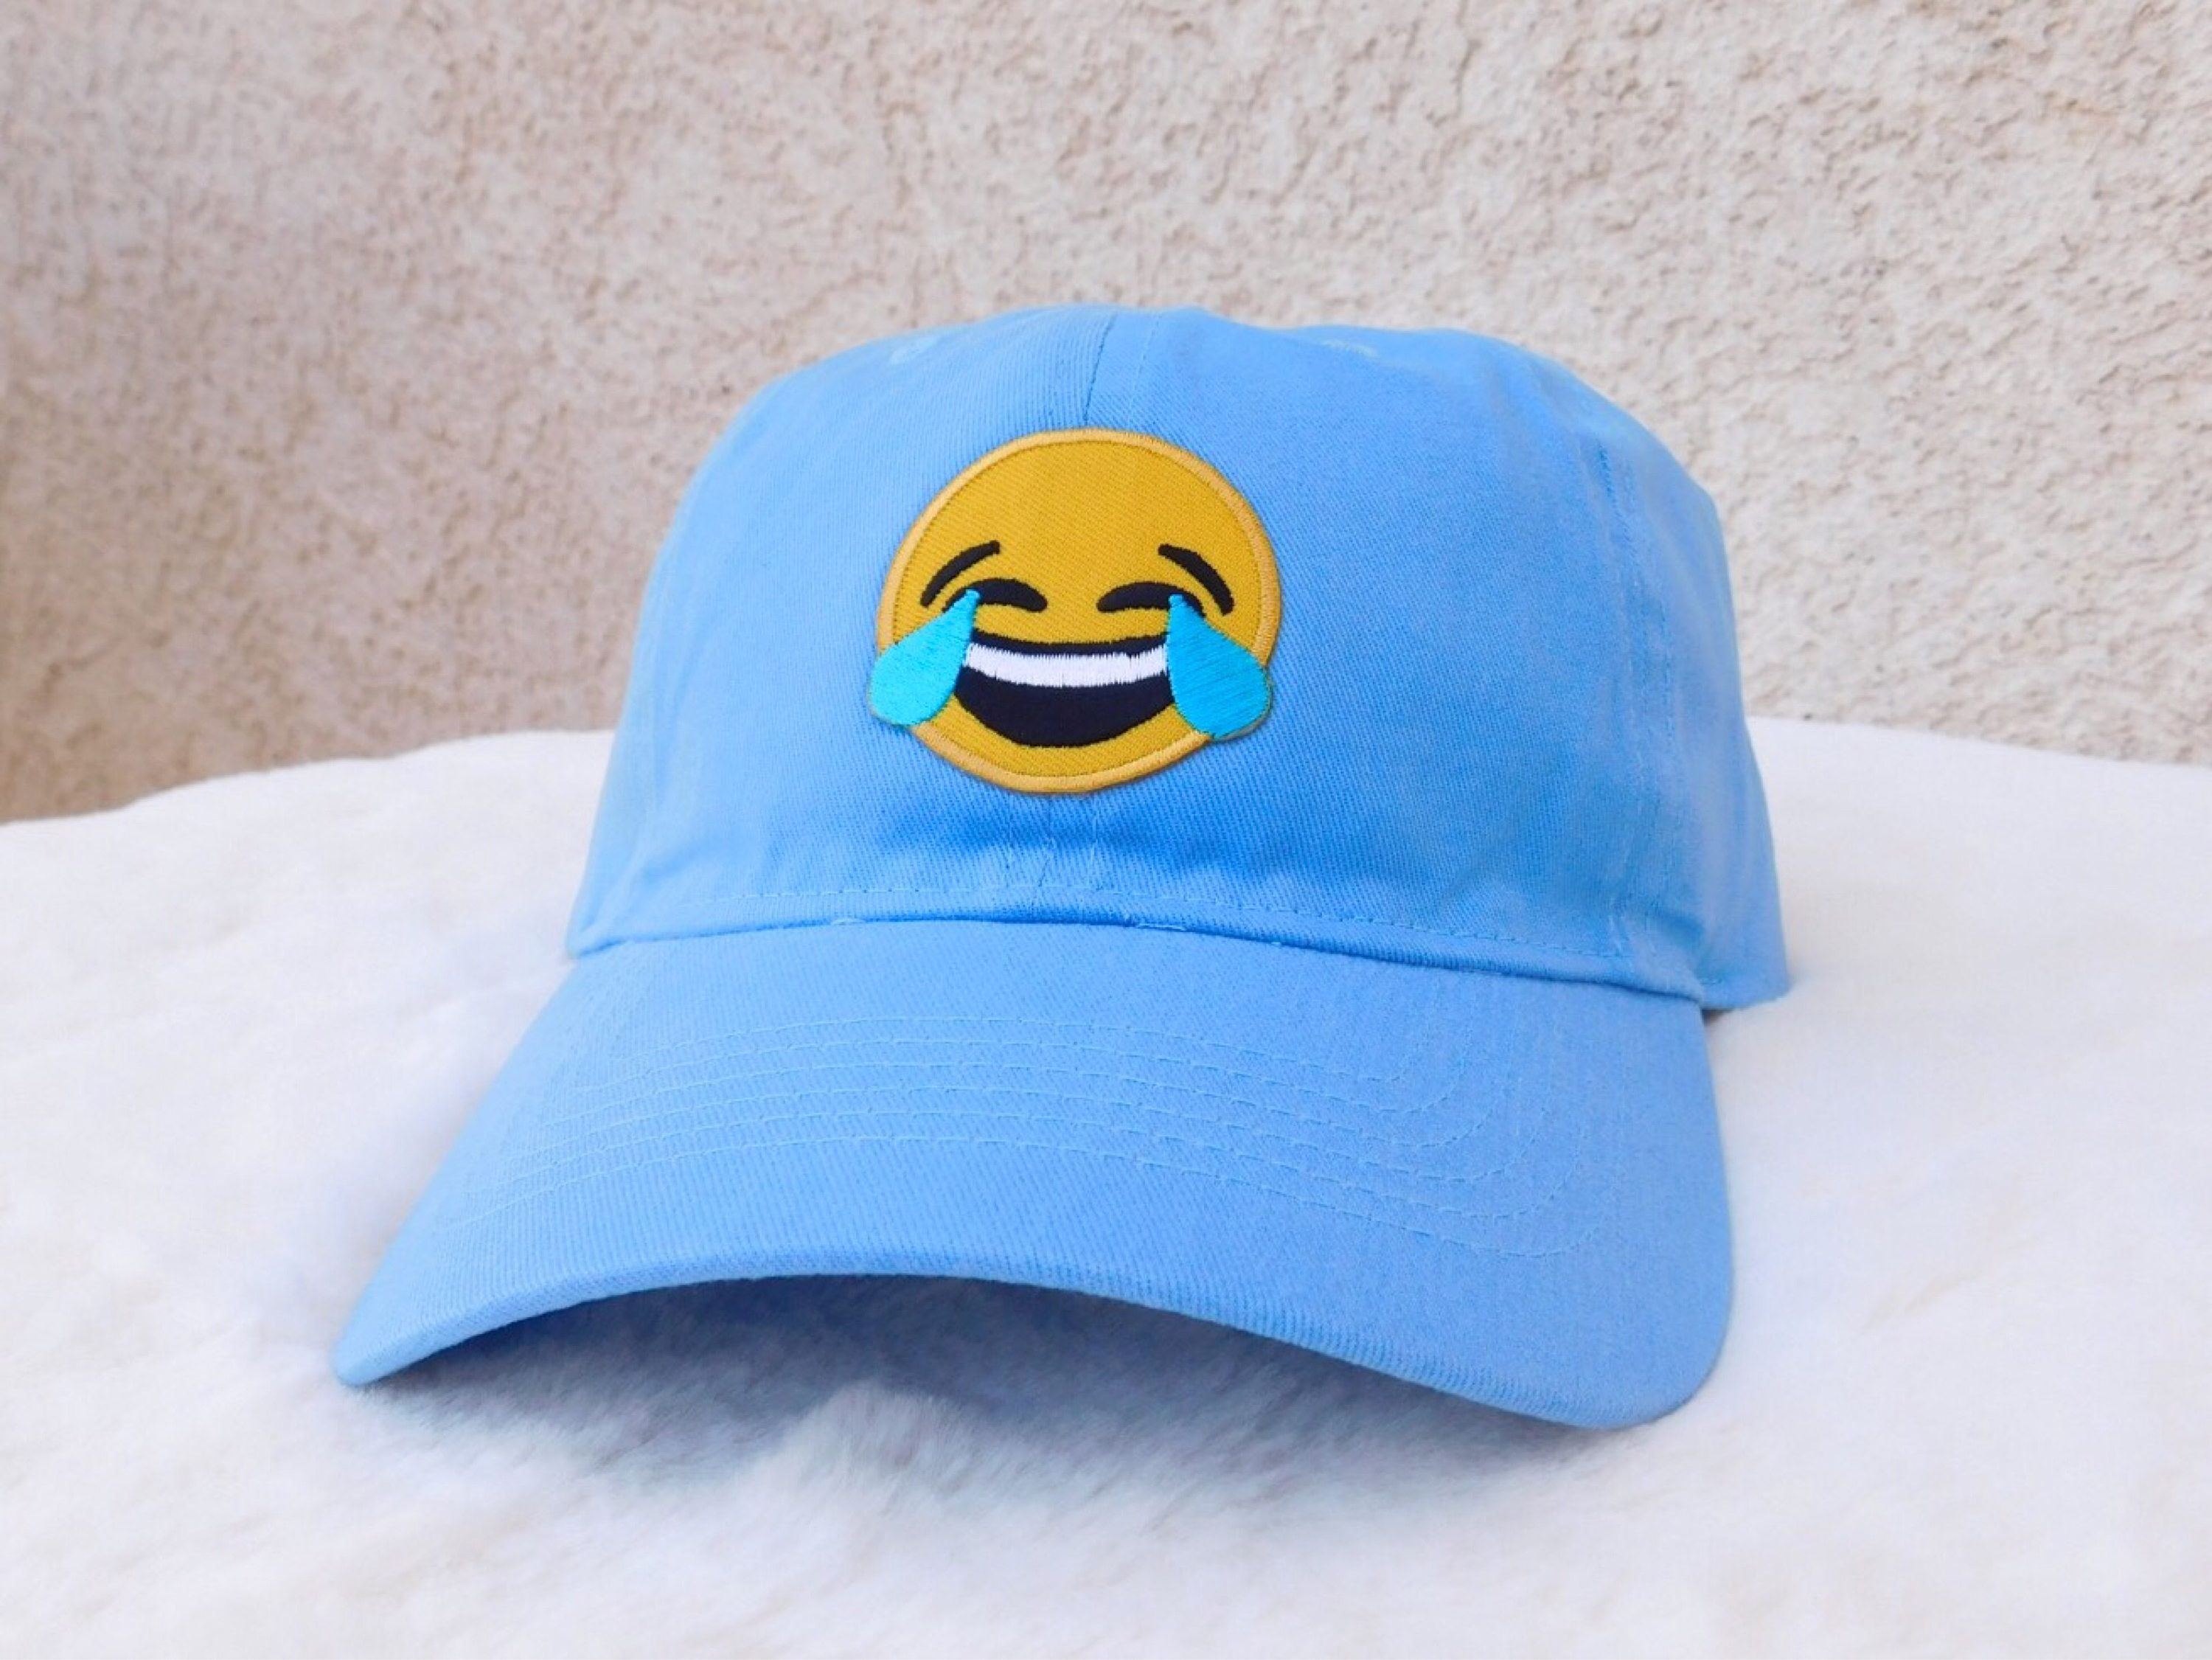 I Can T Help But Laugh Along With This Emoji It Just Makes Me So Happy Baseball Hats Cool Emoji Dad Hats